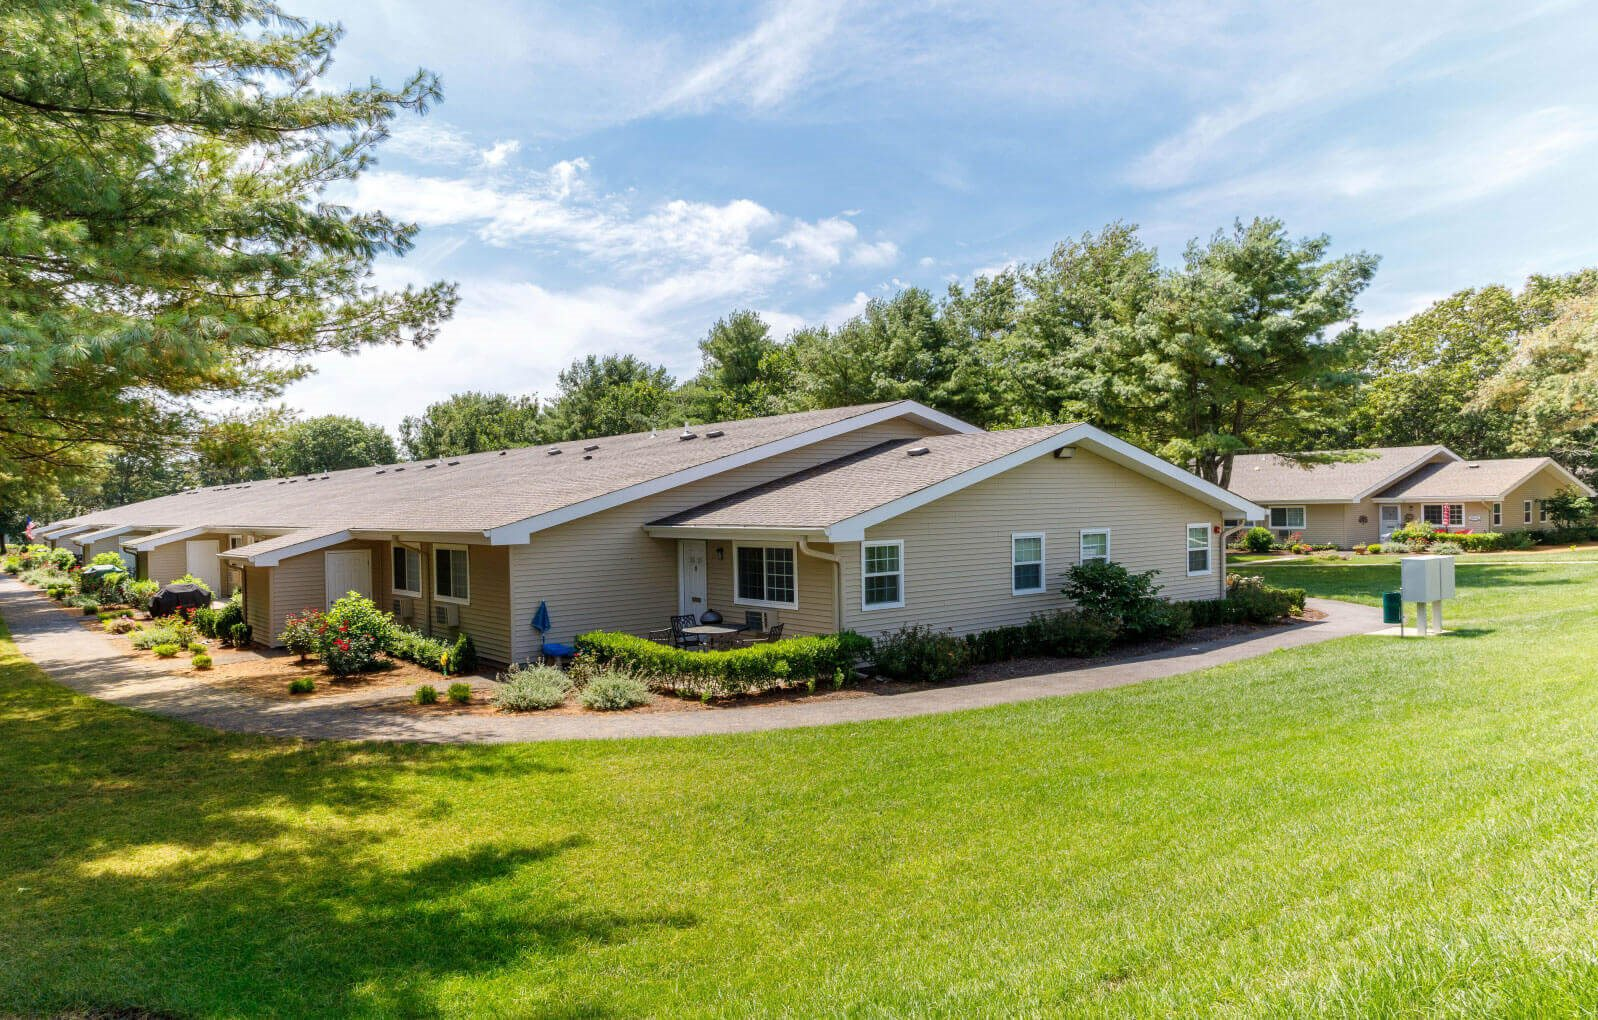 Lush Green Outdoors at Pine Hills South, New York